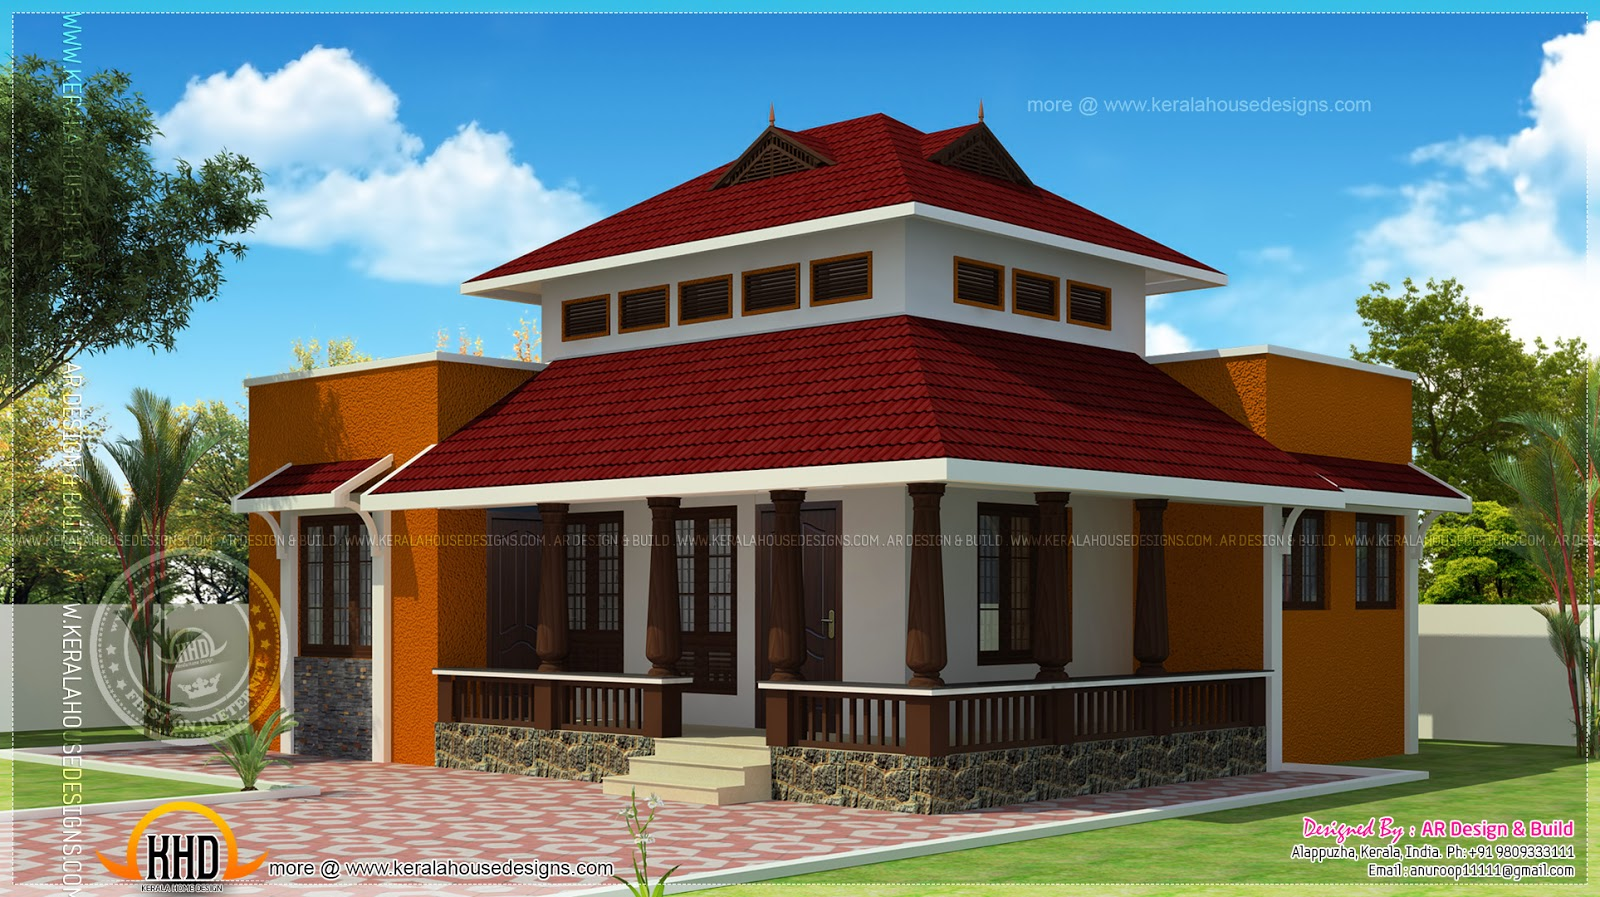 900 residence office rest house in 4 cent land Rest house plan